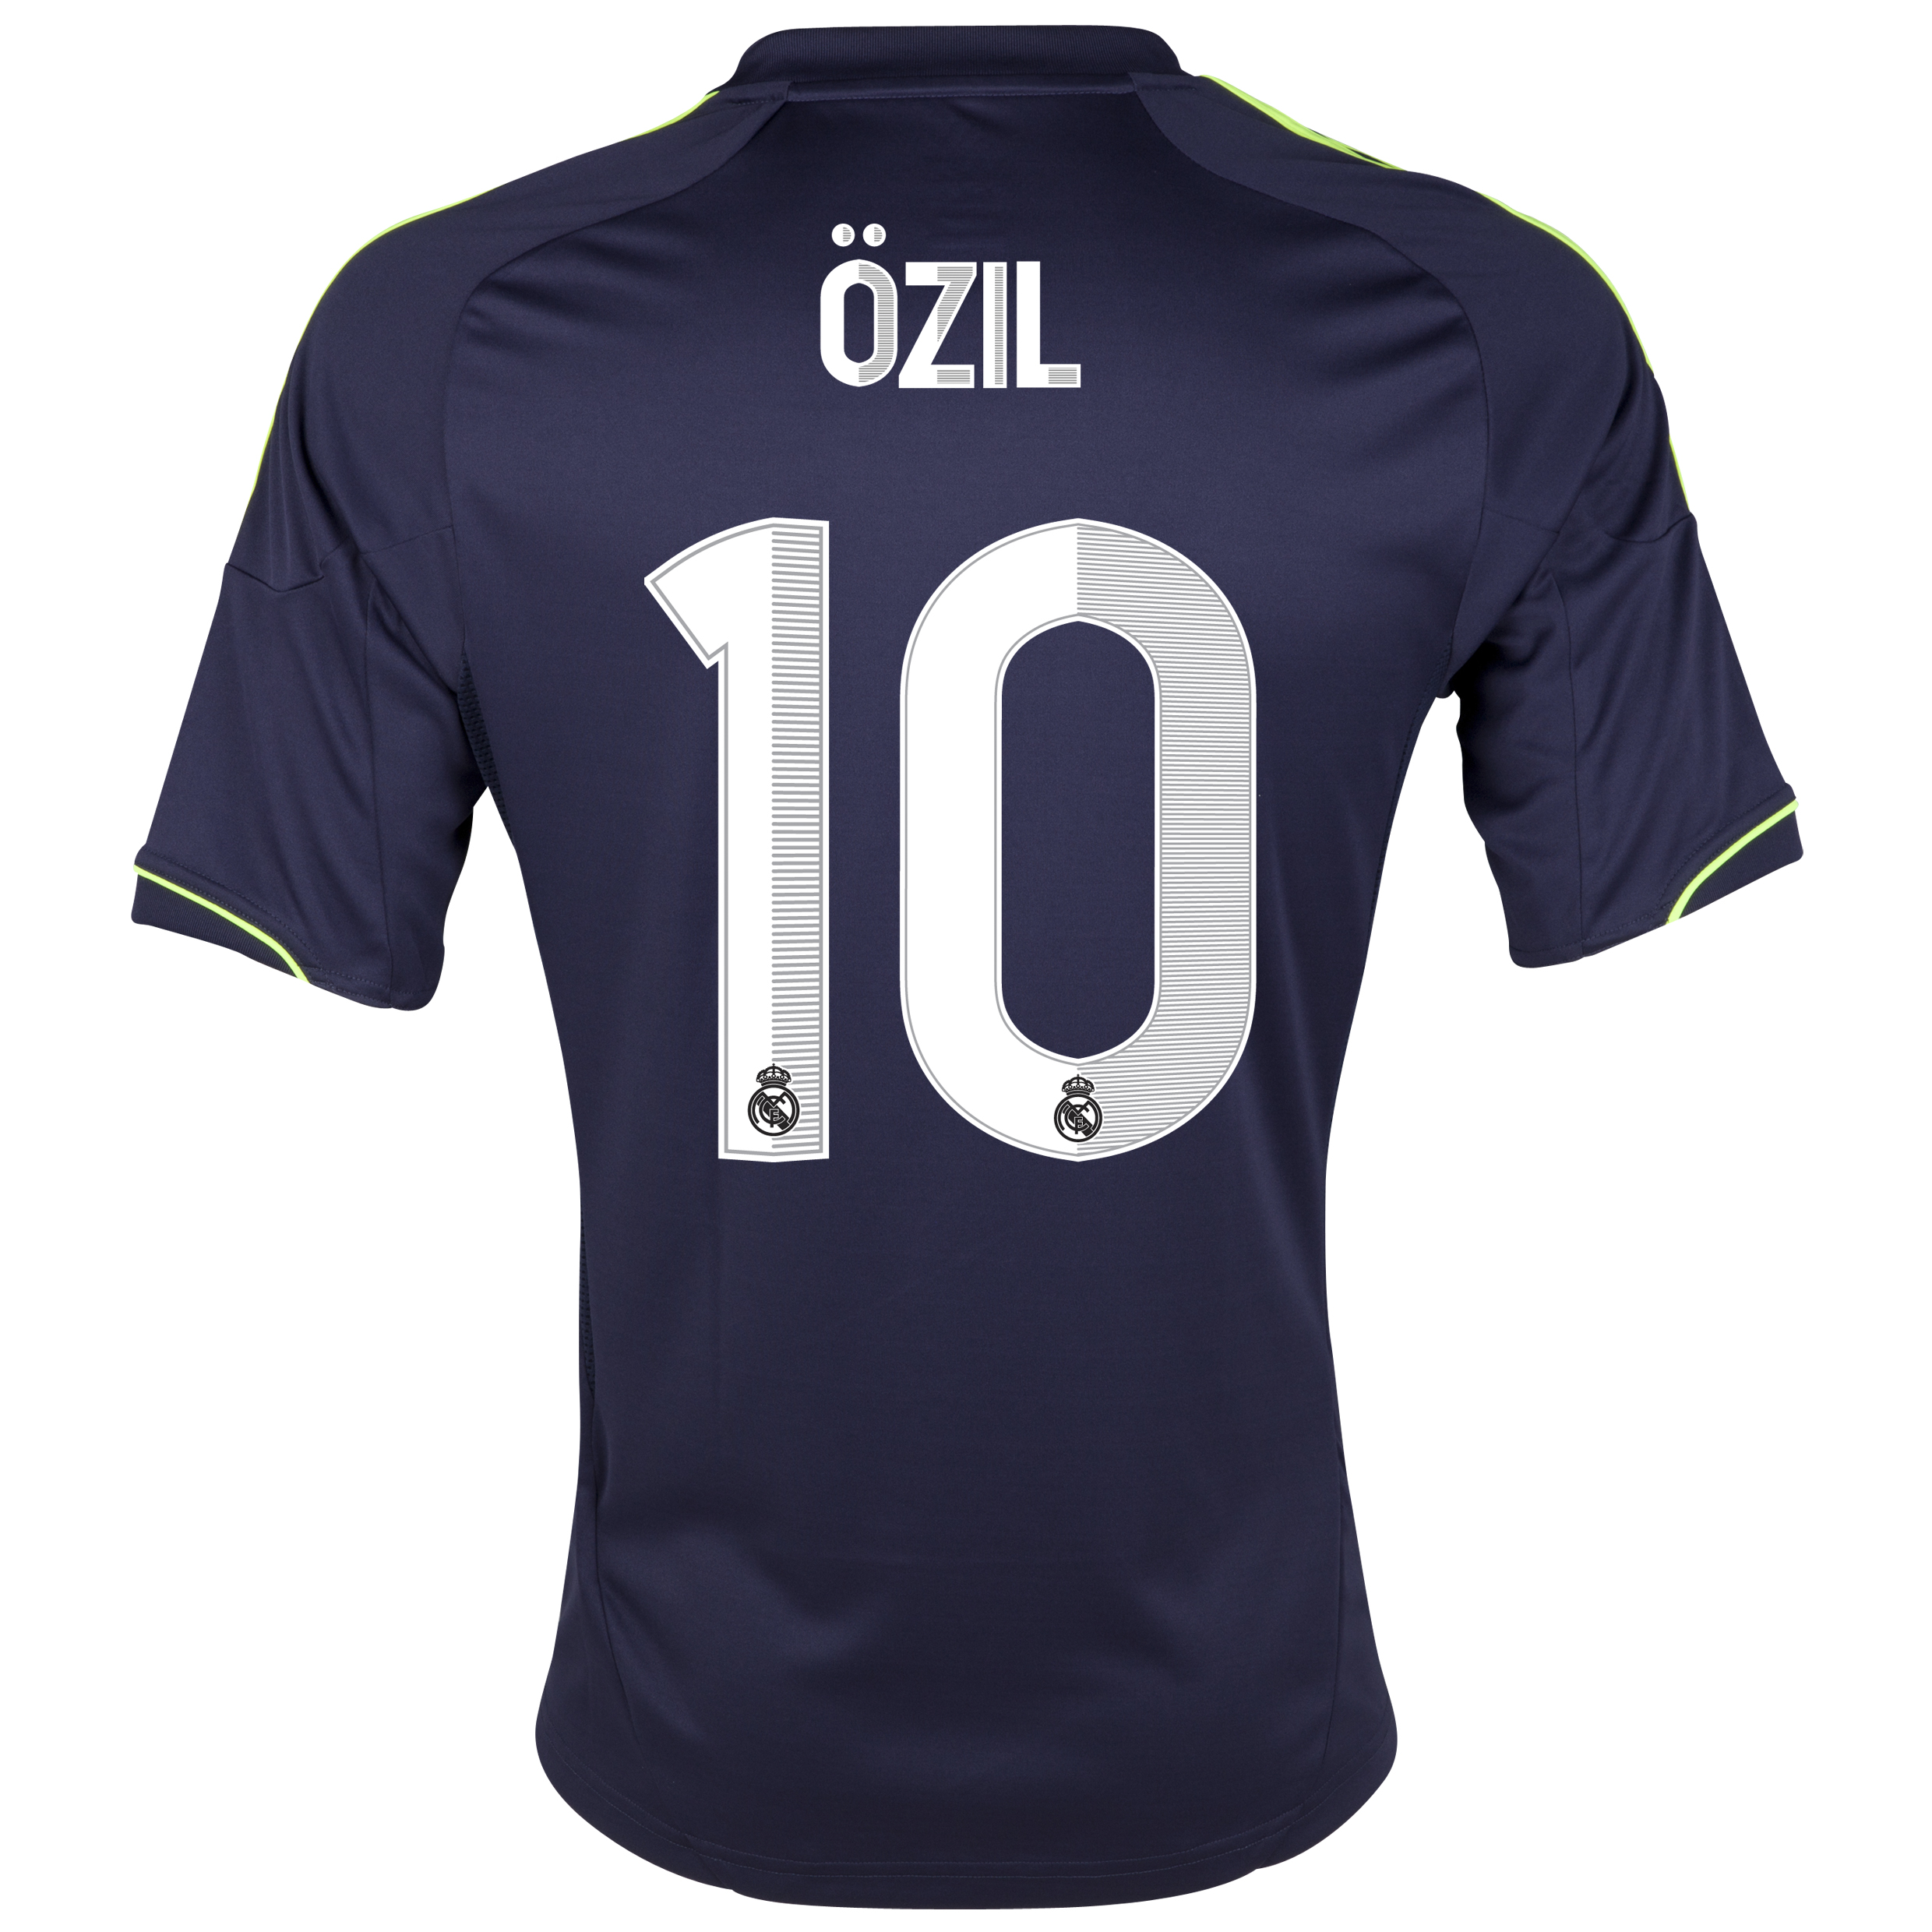 Real Madrid Away Shirt 2012/13 - Youths with zil 10 printing